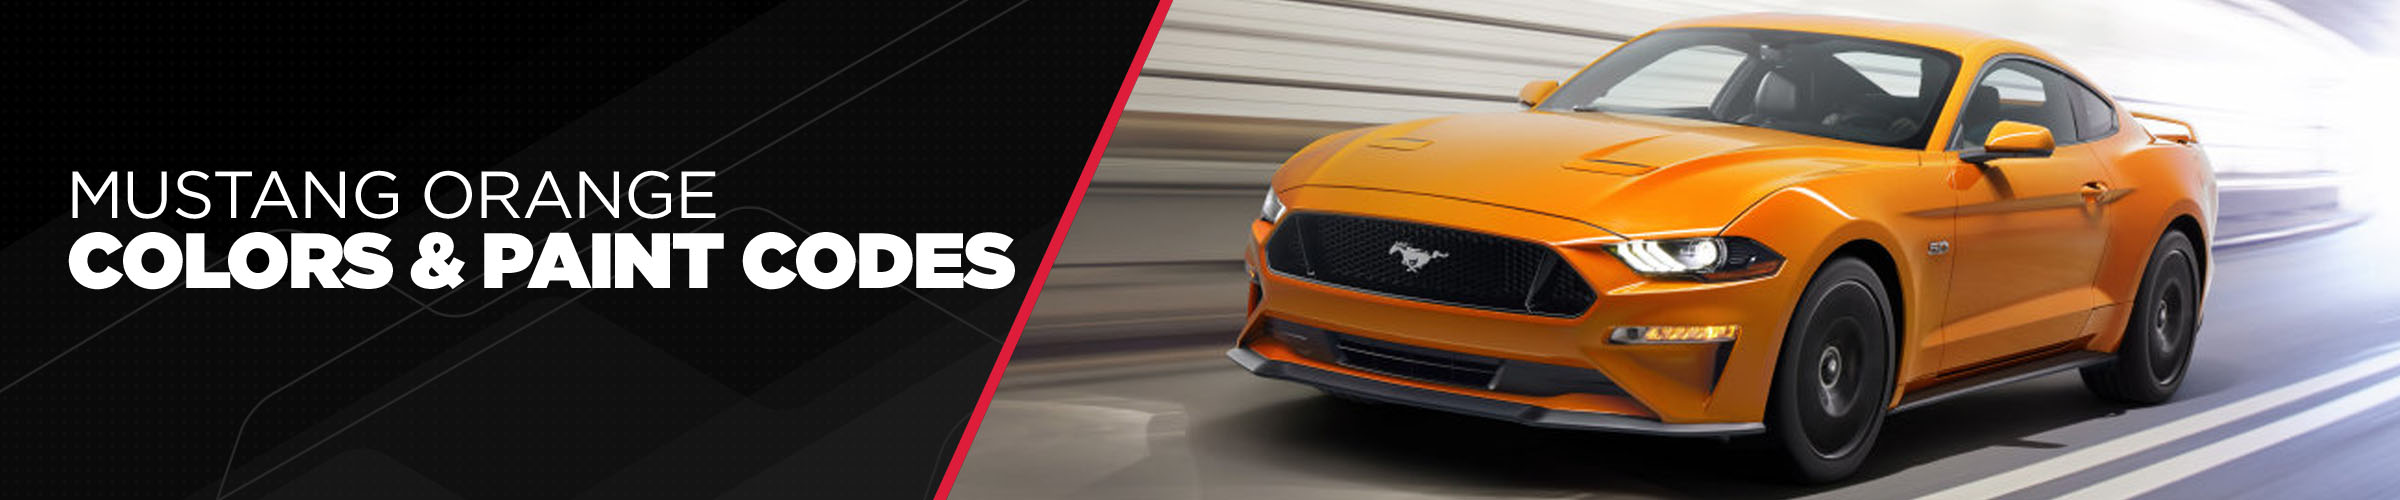 Mustang Orange Colors & Paint Codes